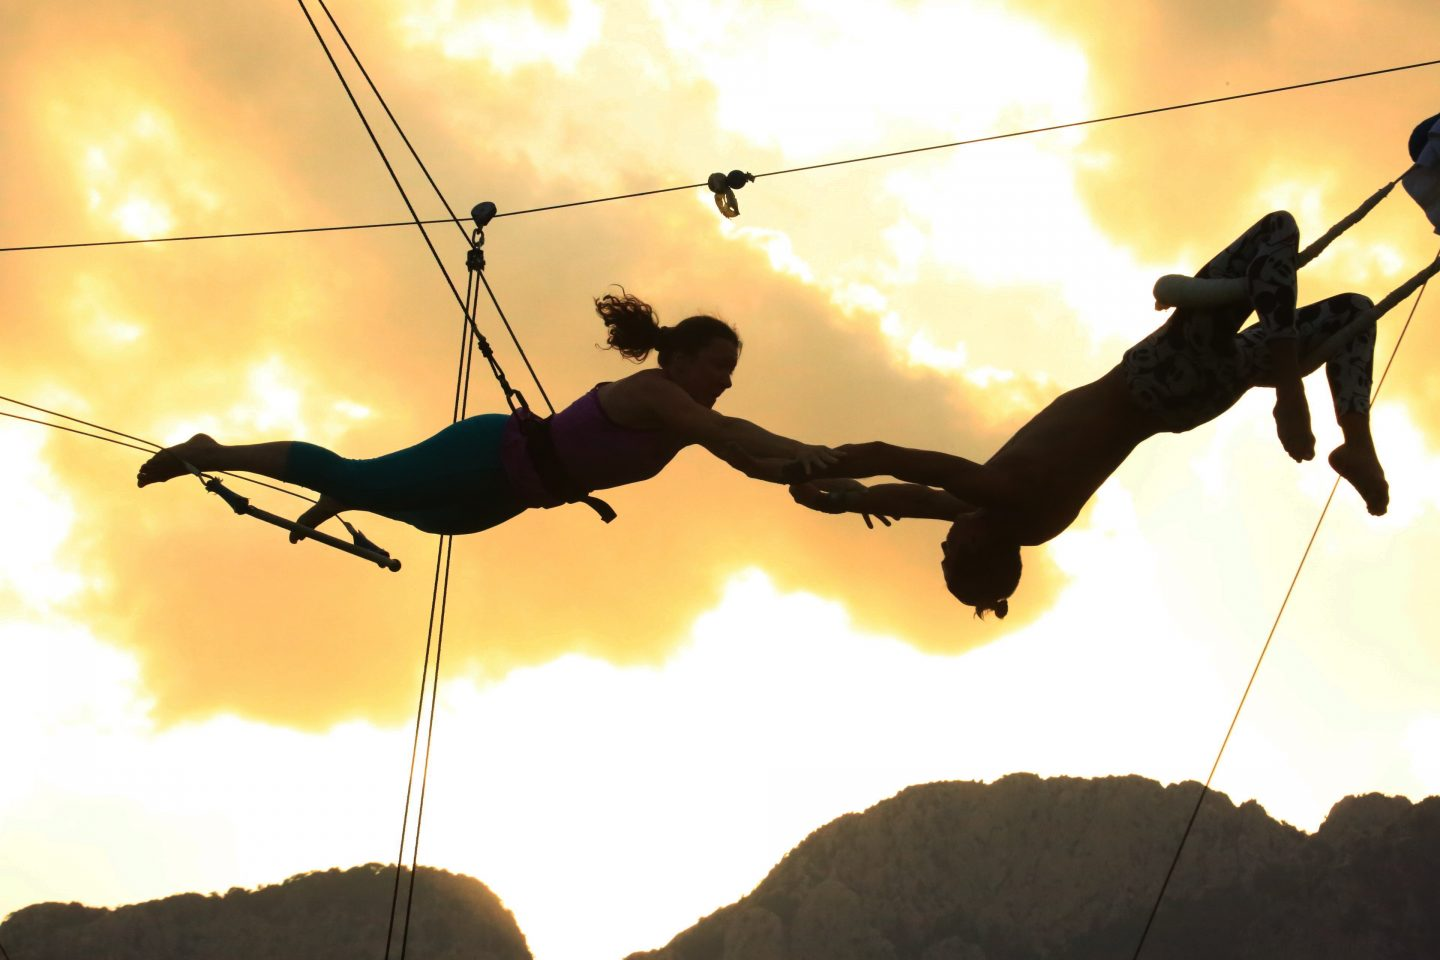 Two people swing in the air on a trapeze during the sunset reaching out to catch one another. sunset, sport, trapeze, faith, trust